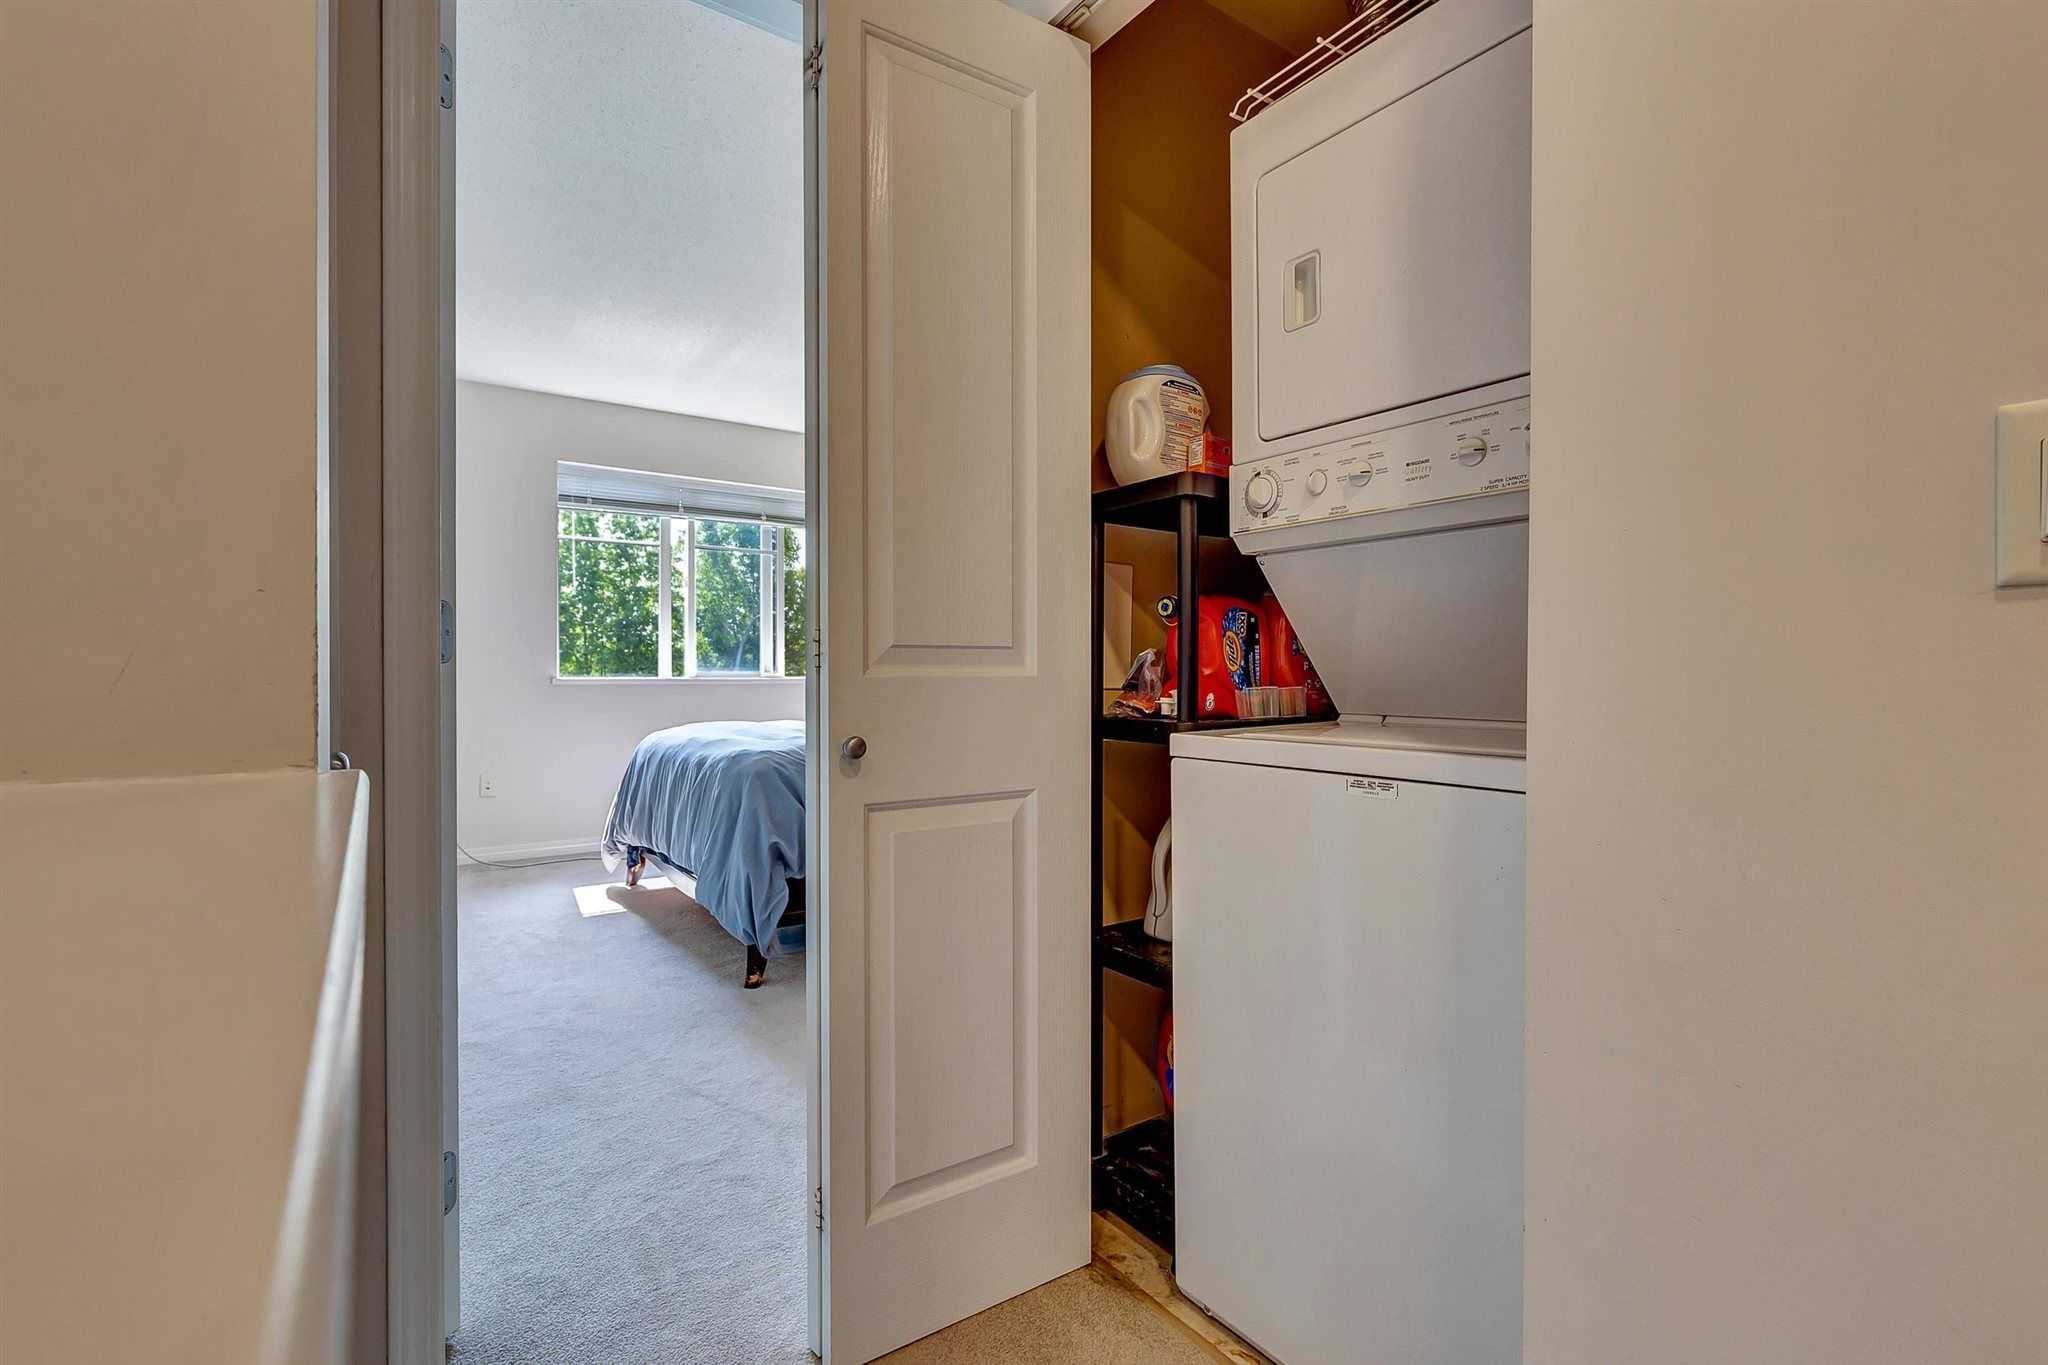 """Photo 23: Photos: 9 15871 85 Avenue in Surrey: Fleetwood Tynehead Townhouse for sale in """"Huckleberry"""" : MLS®# R2606668"""